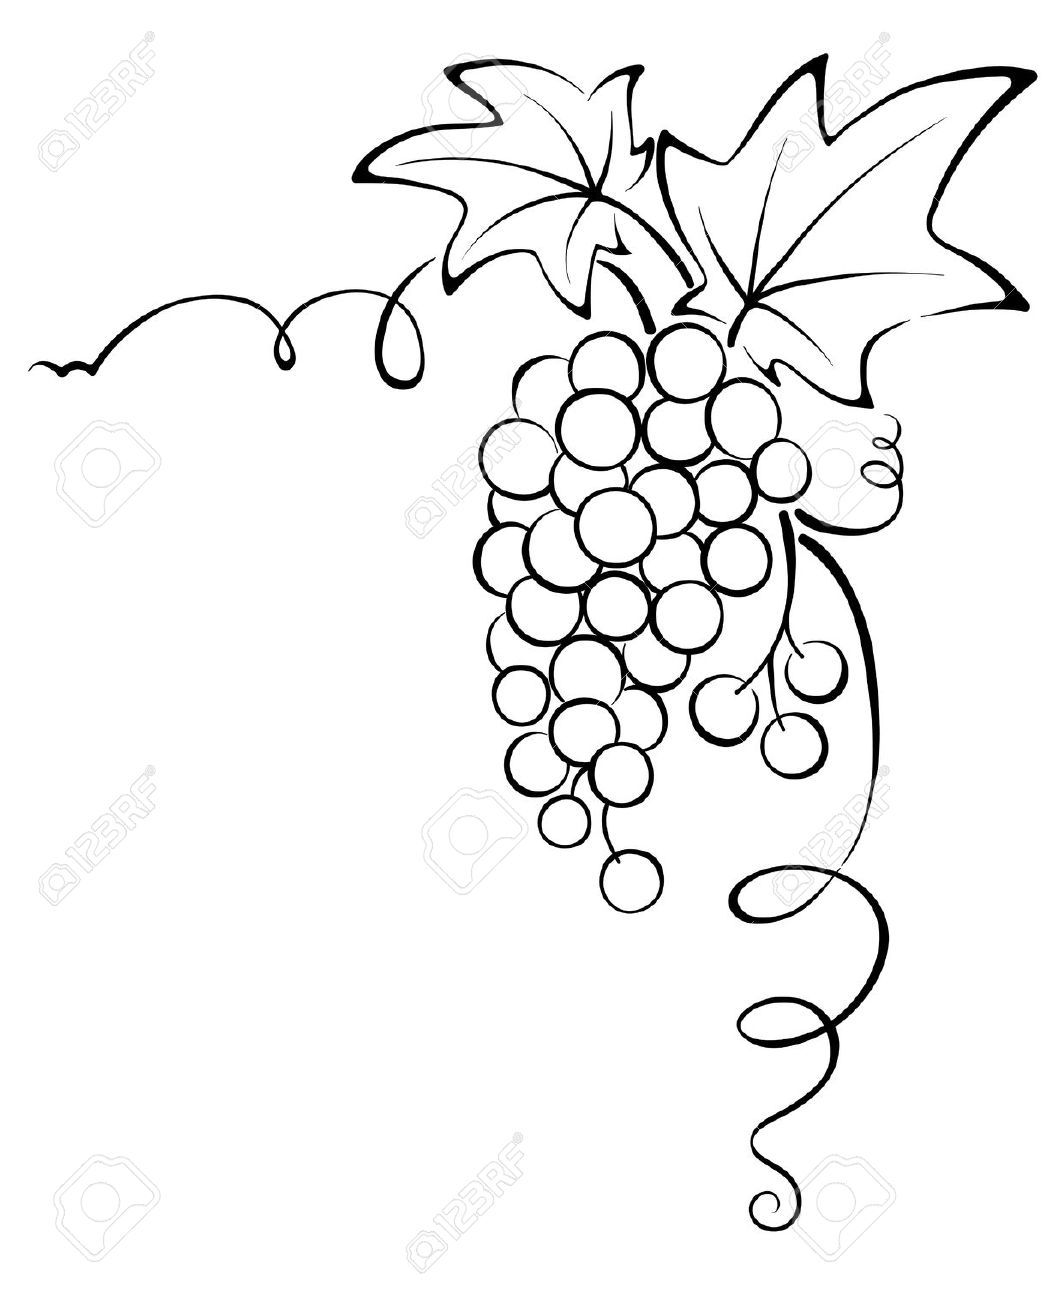 grape vine design - Google Search | Tile Abstract  for Drawing Grape Vines  61obs